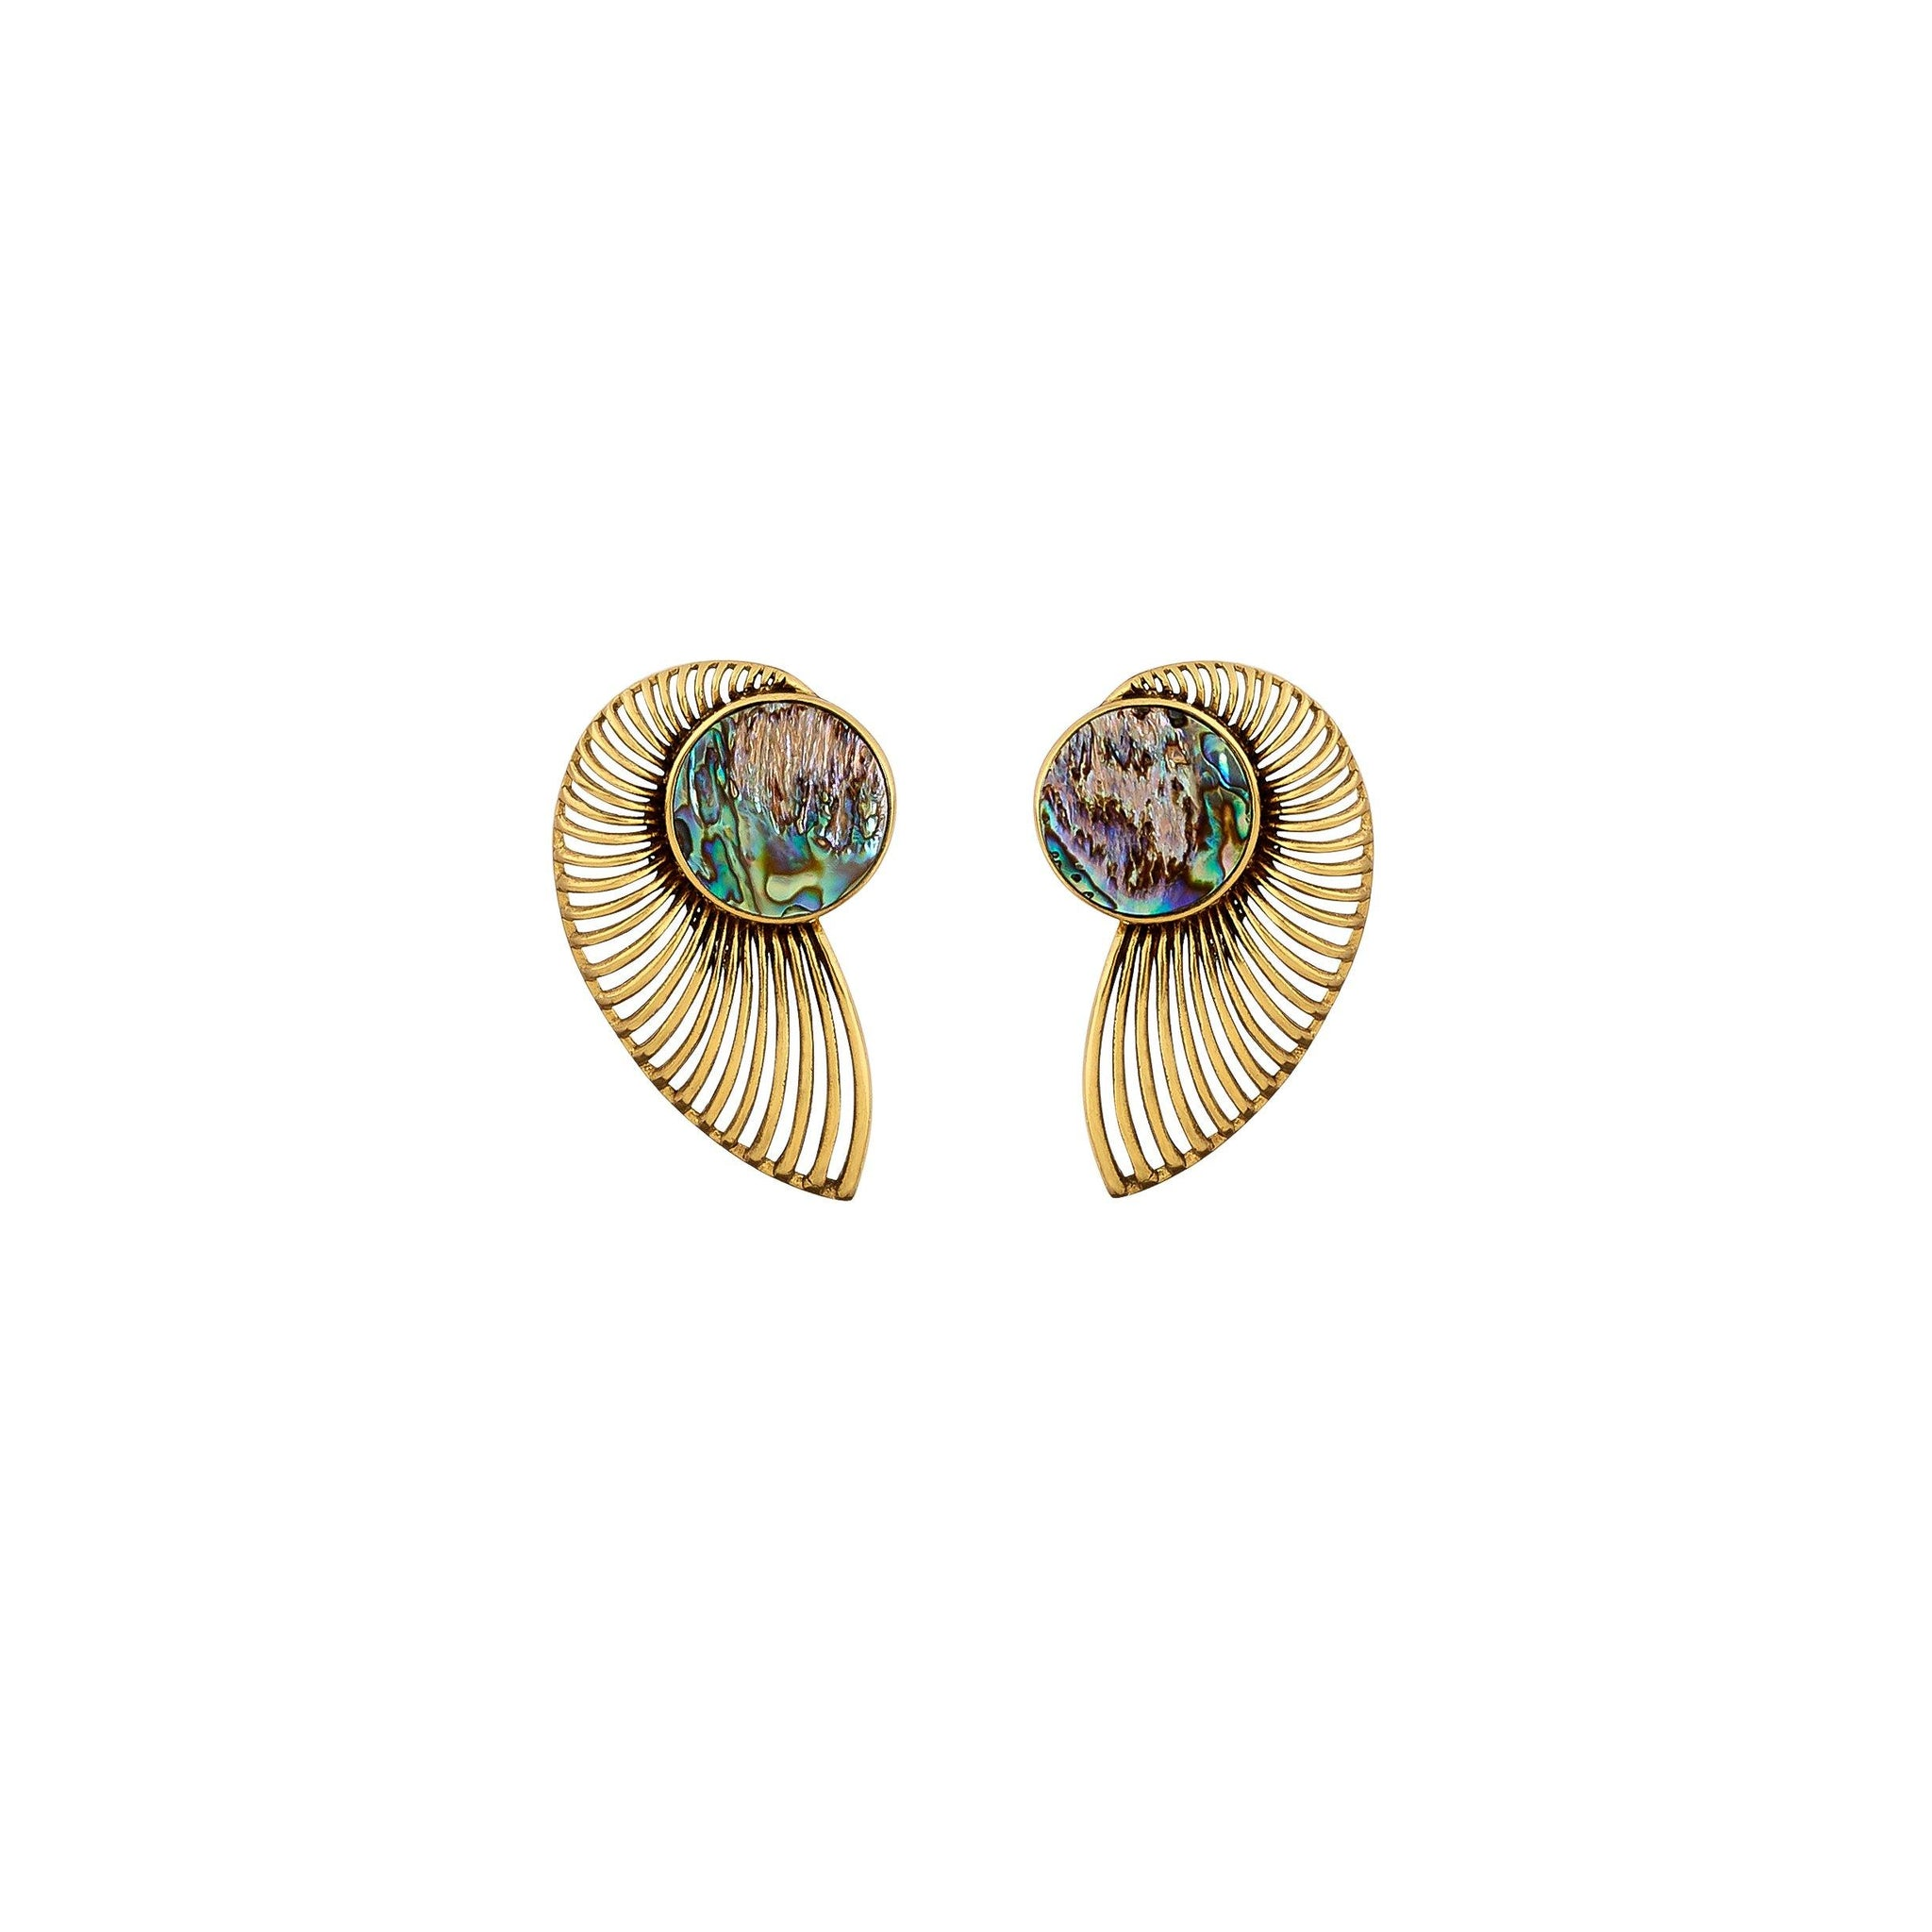 Acra Earrings - Kasha Bali